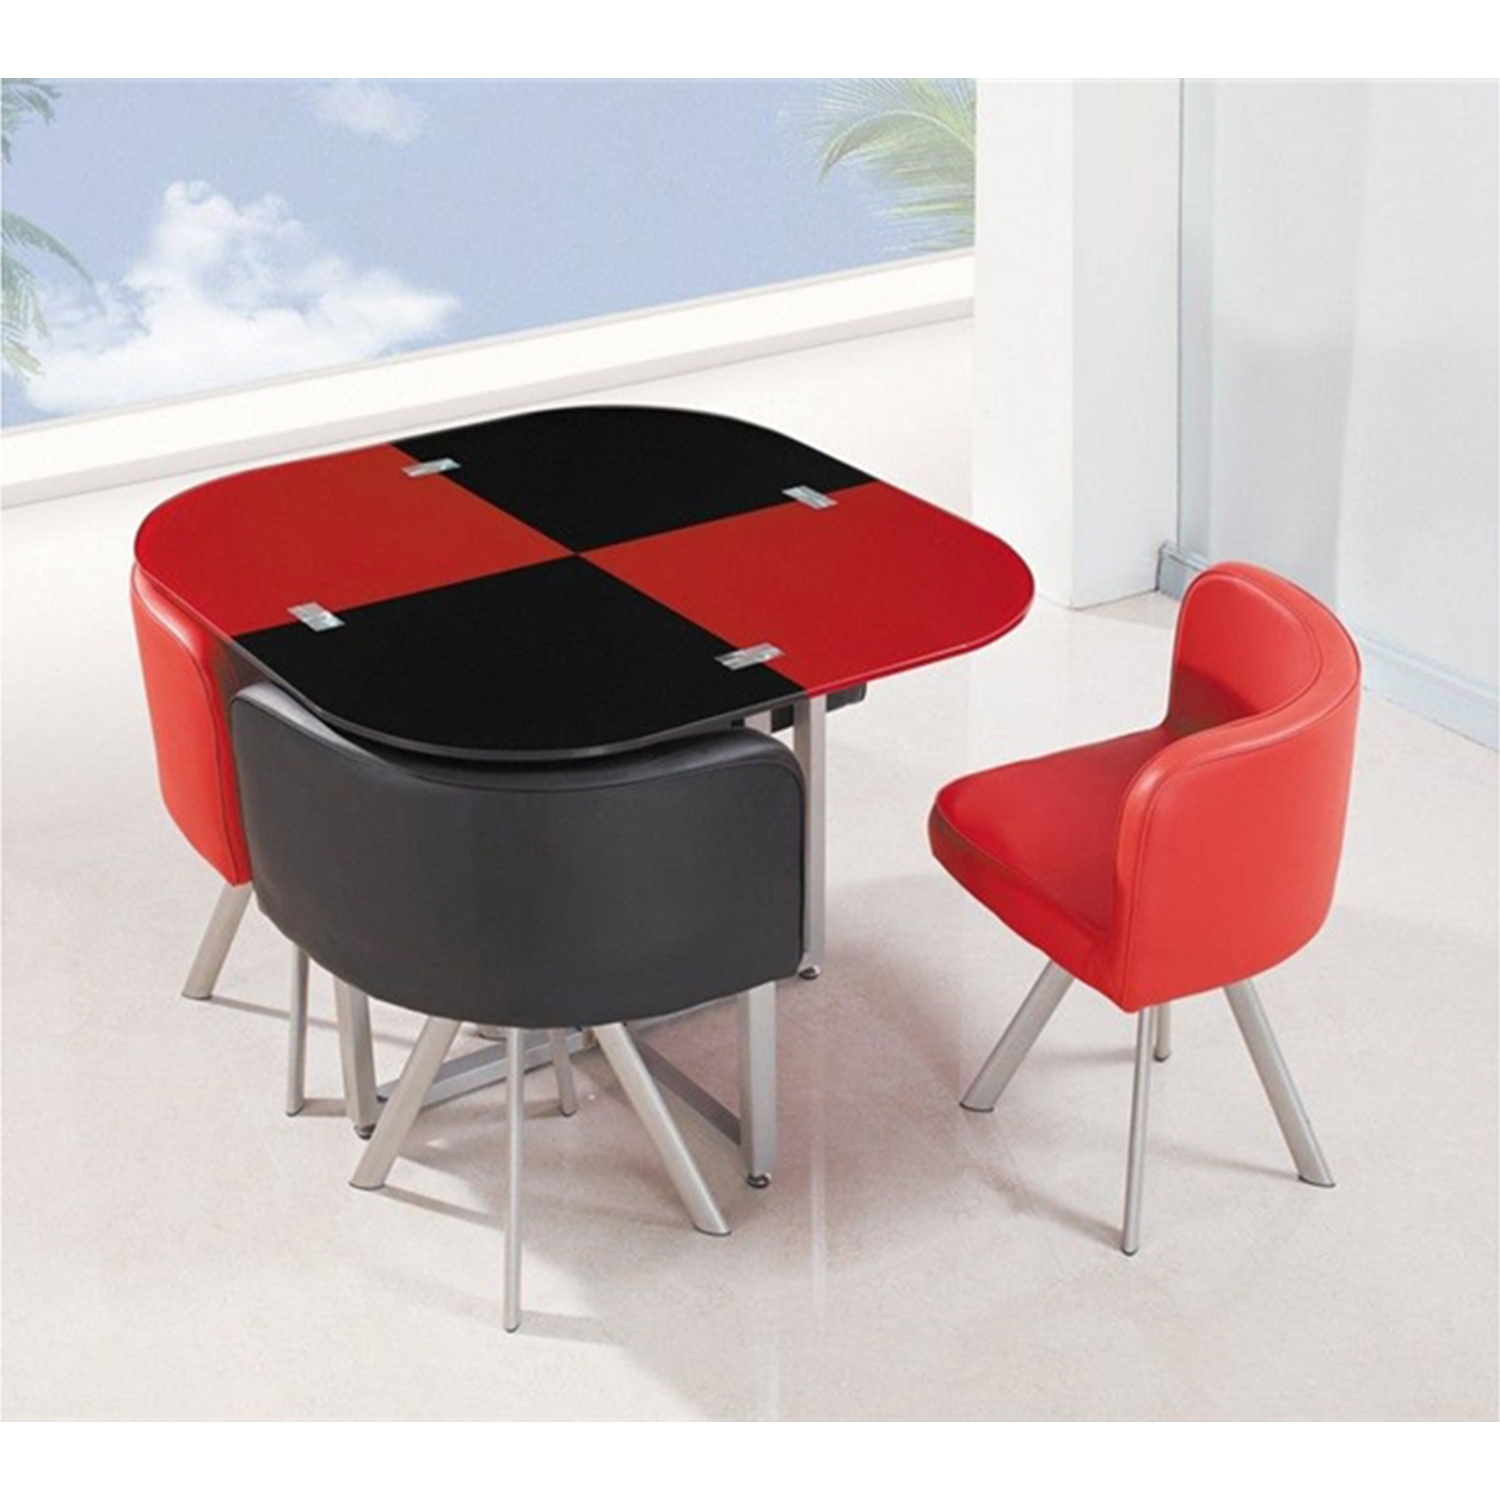 Emma 5-Piece Dining Set, Red/Black